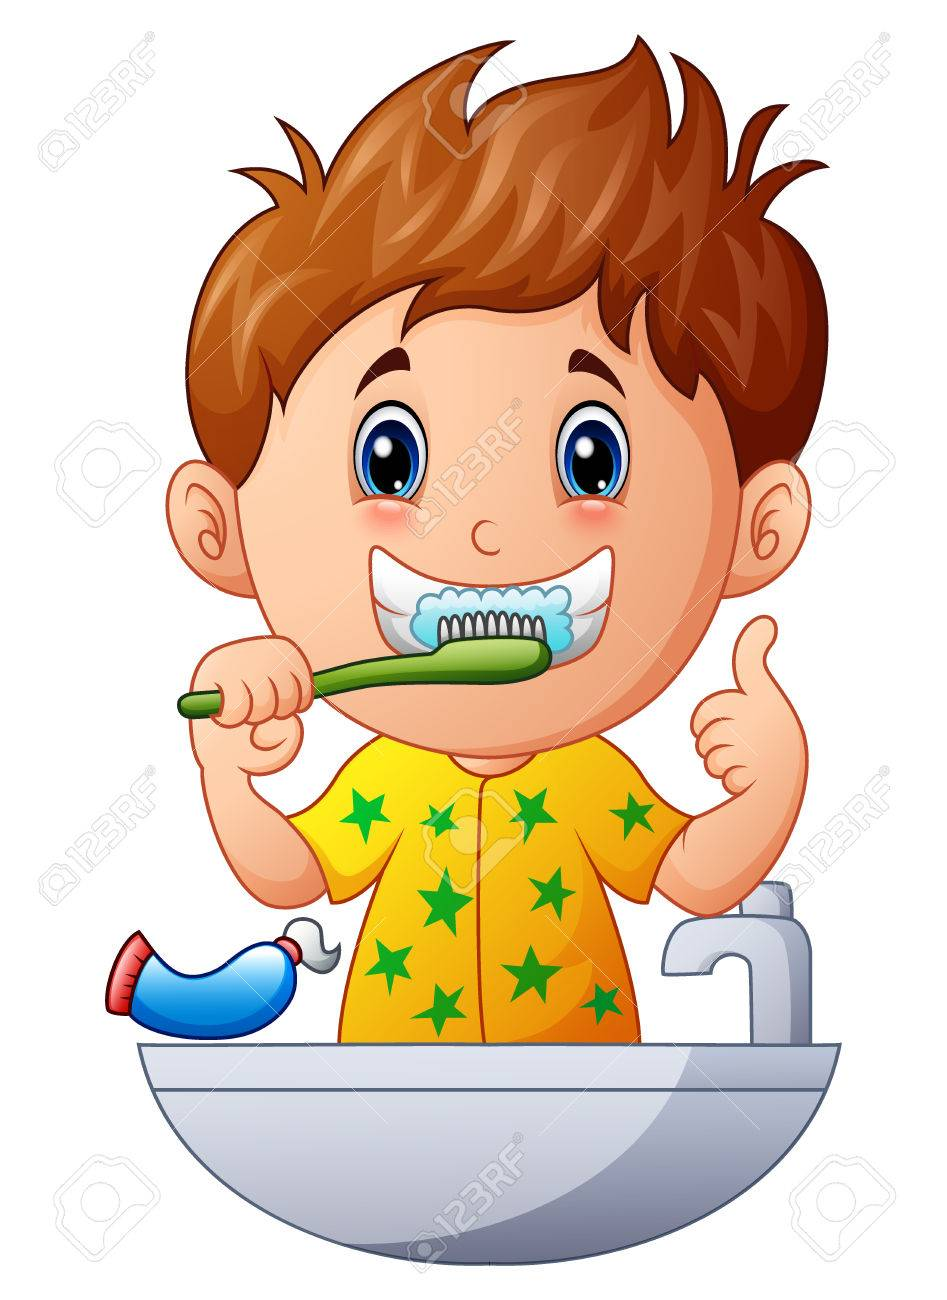 vector illustration of cute boy brushing teeth royalty free cliparts